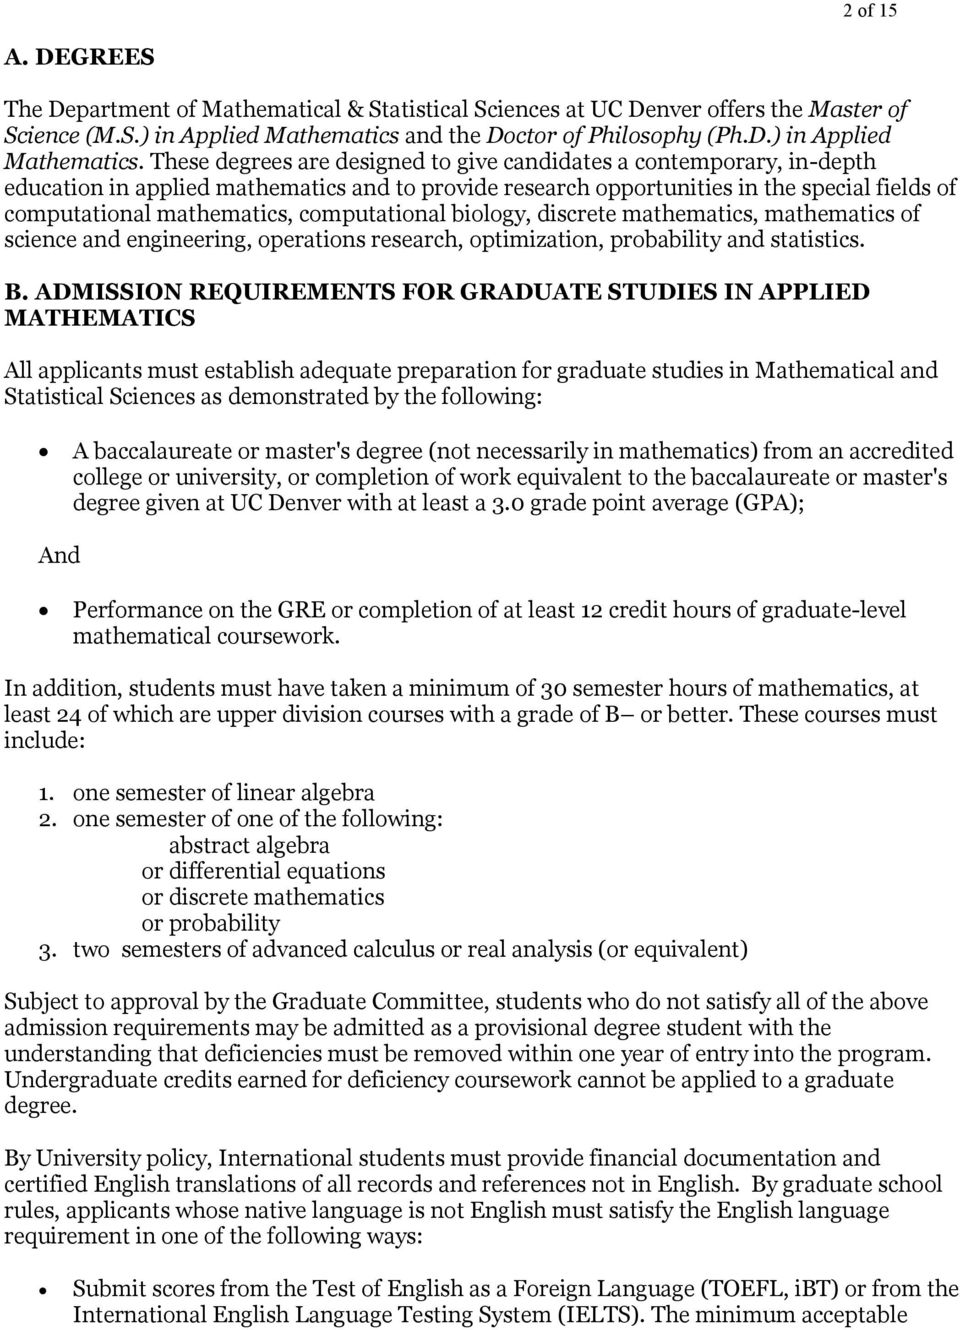 These degrees are designed to give candidates a contemporary, in-depth education in applied mathematics and to provide research opportunities in the special fields of computational mathematics,